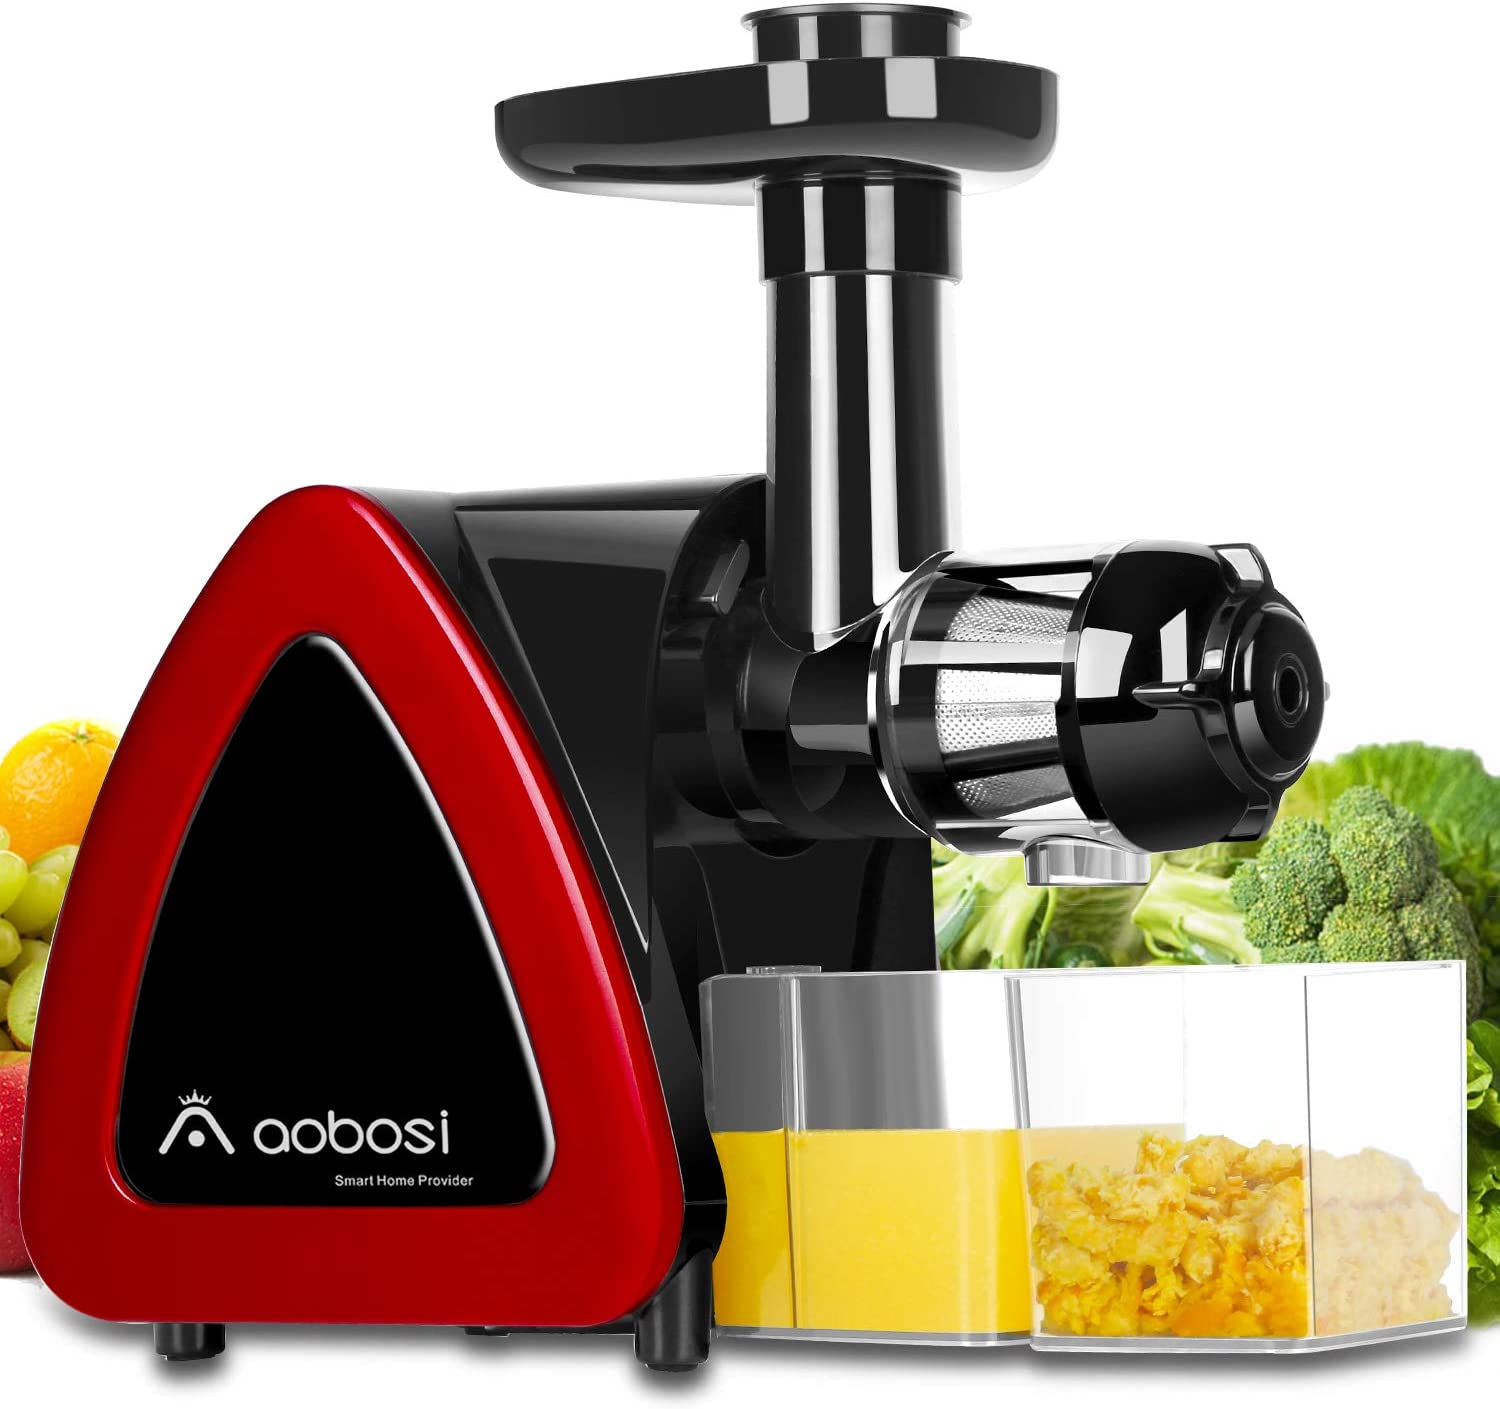 71JEz3mP9gL. AC SL1500 The Best Masticating Juicer 2021 - Reviews & Buyer's Guide